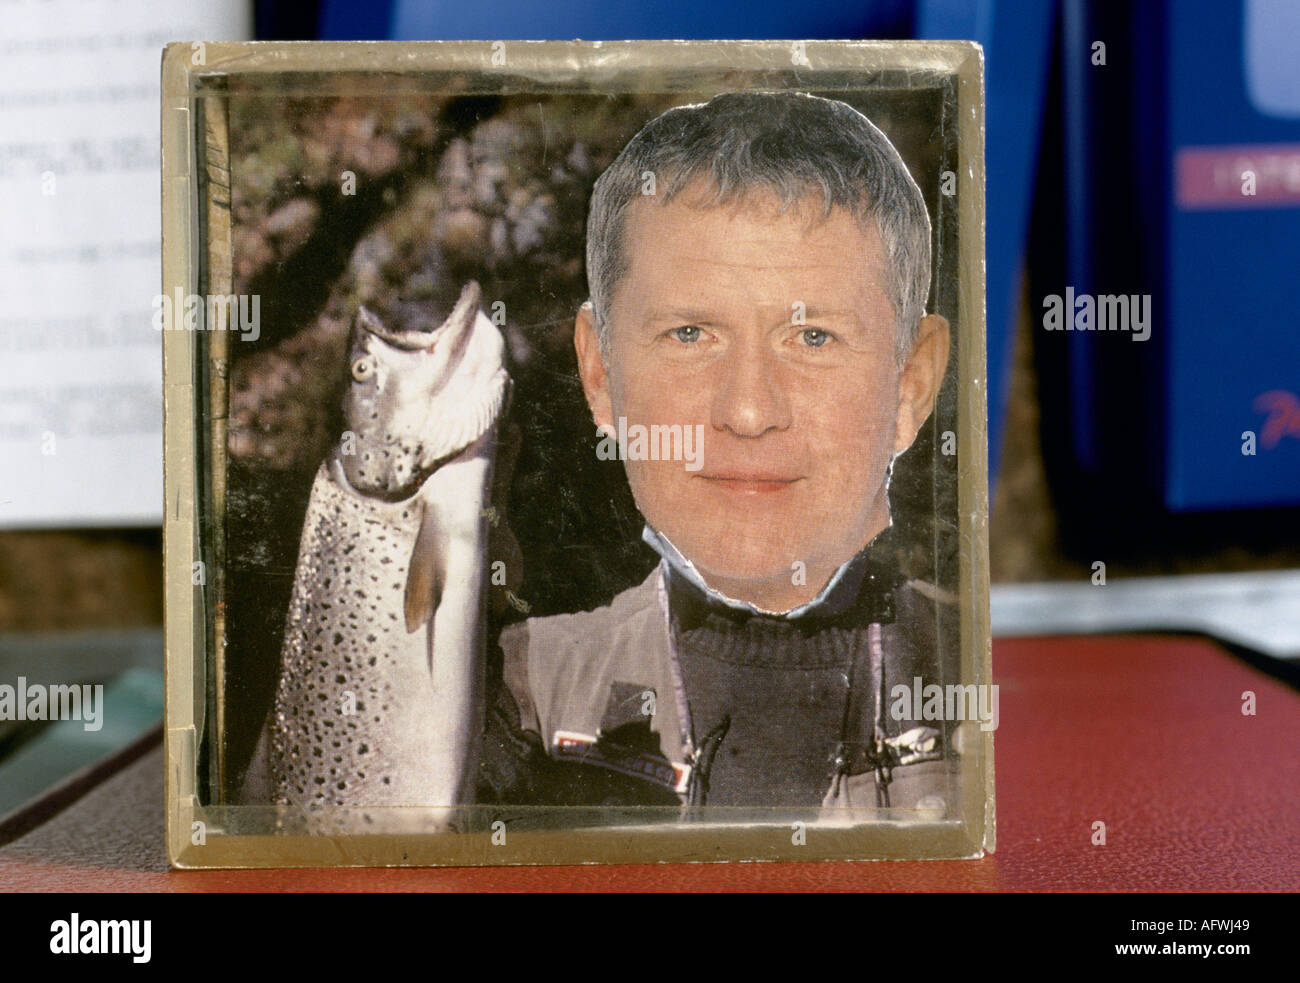 CASUALTY TV PROGRAMME 1997 HOMER SYKES - Stock Image